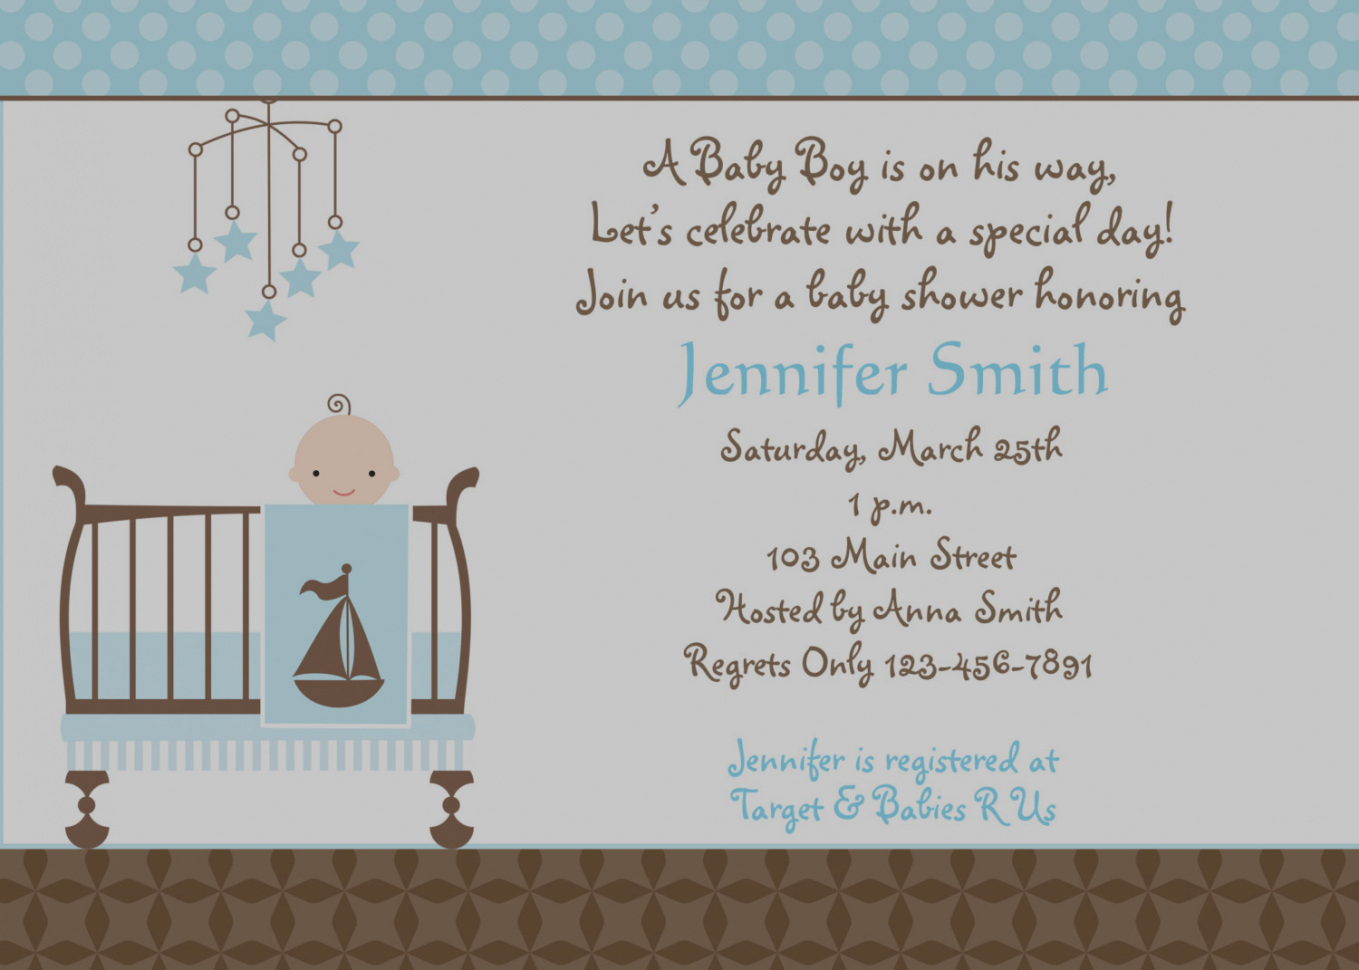 Modular Baby Boy Invitations Baby Shower - Baby Shower Gallery pertaining to Baby Boy Baby Shower Invitations